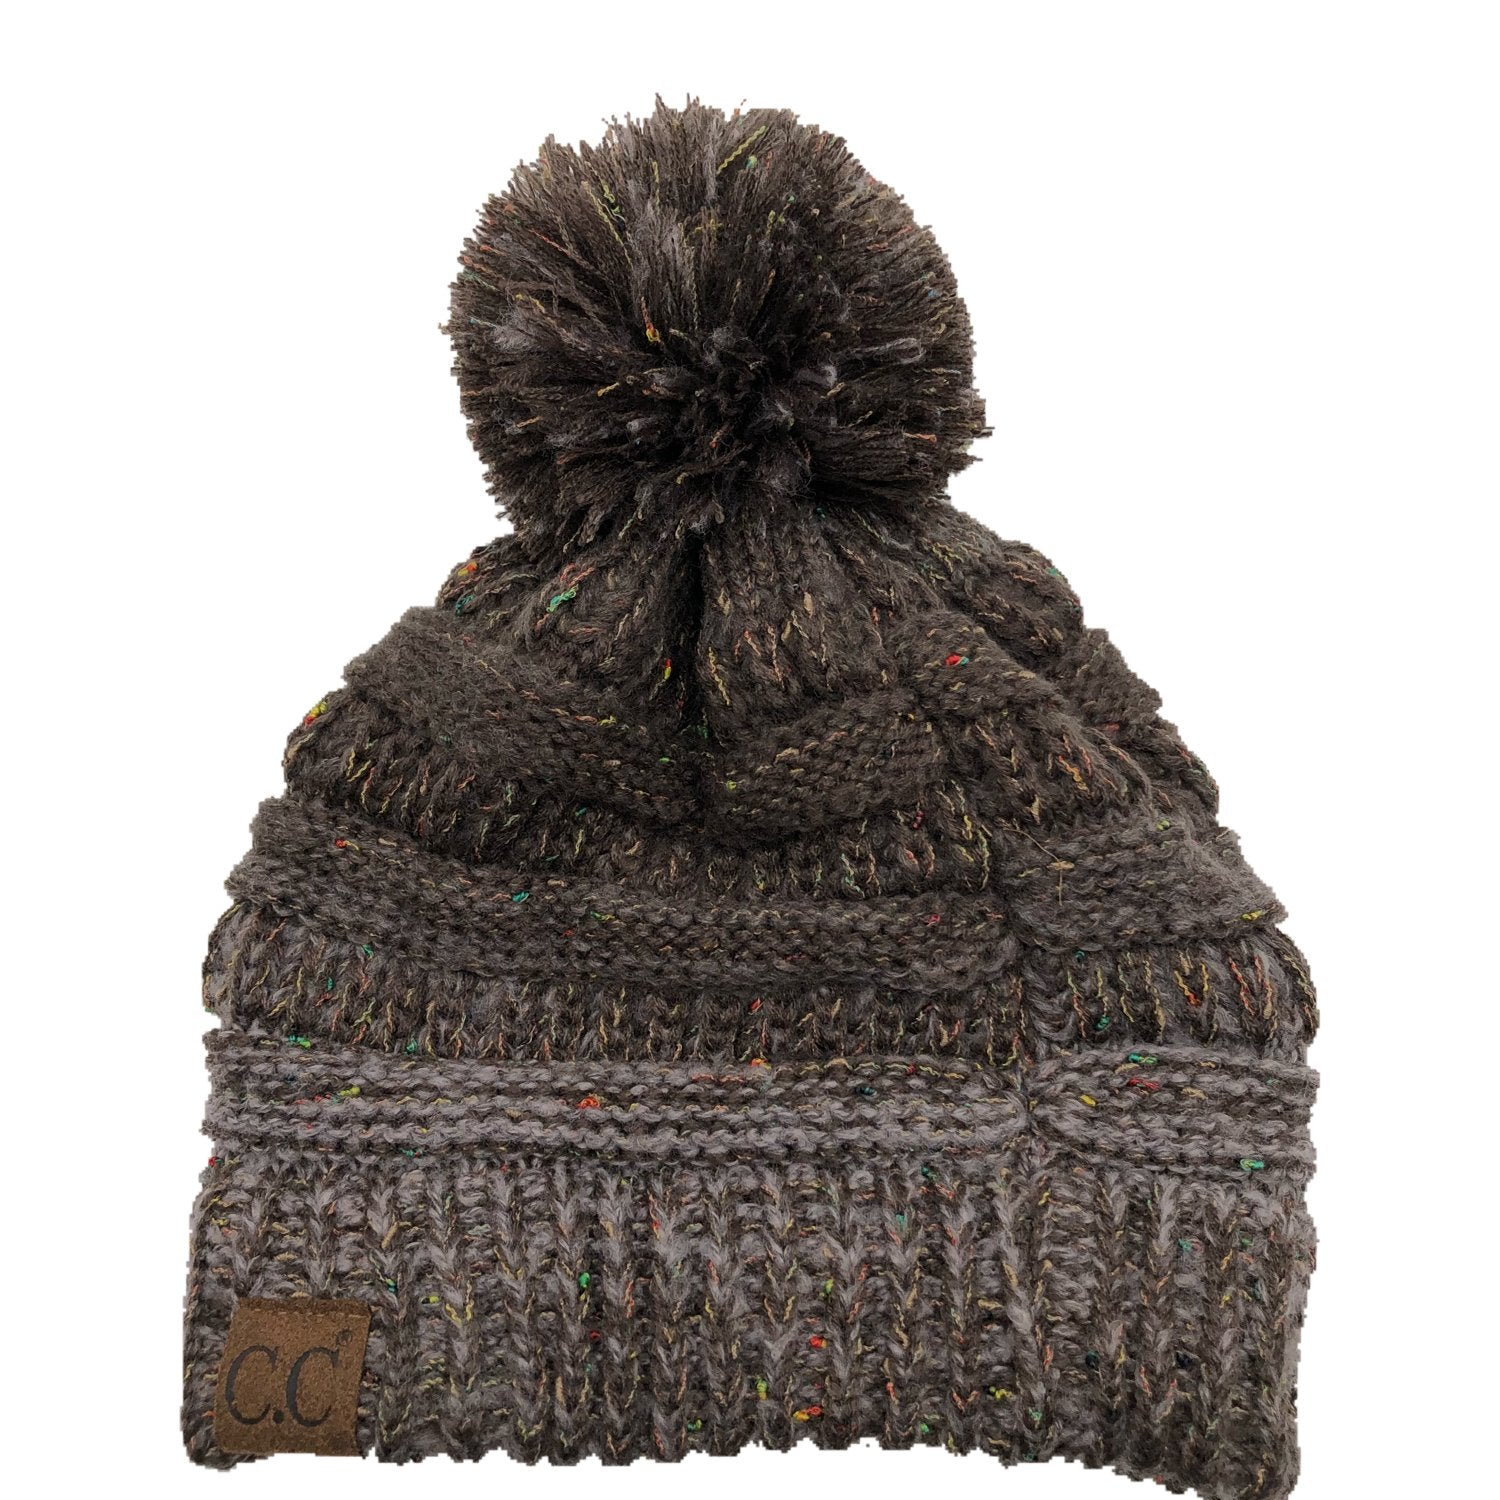 YJ-817 Speckled Pom Beanie - Brown